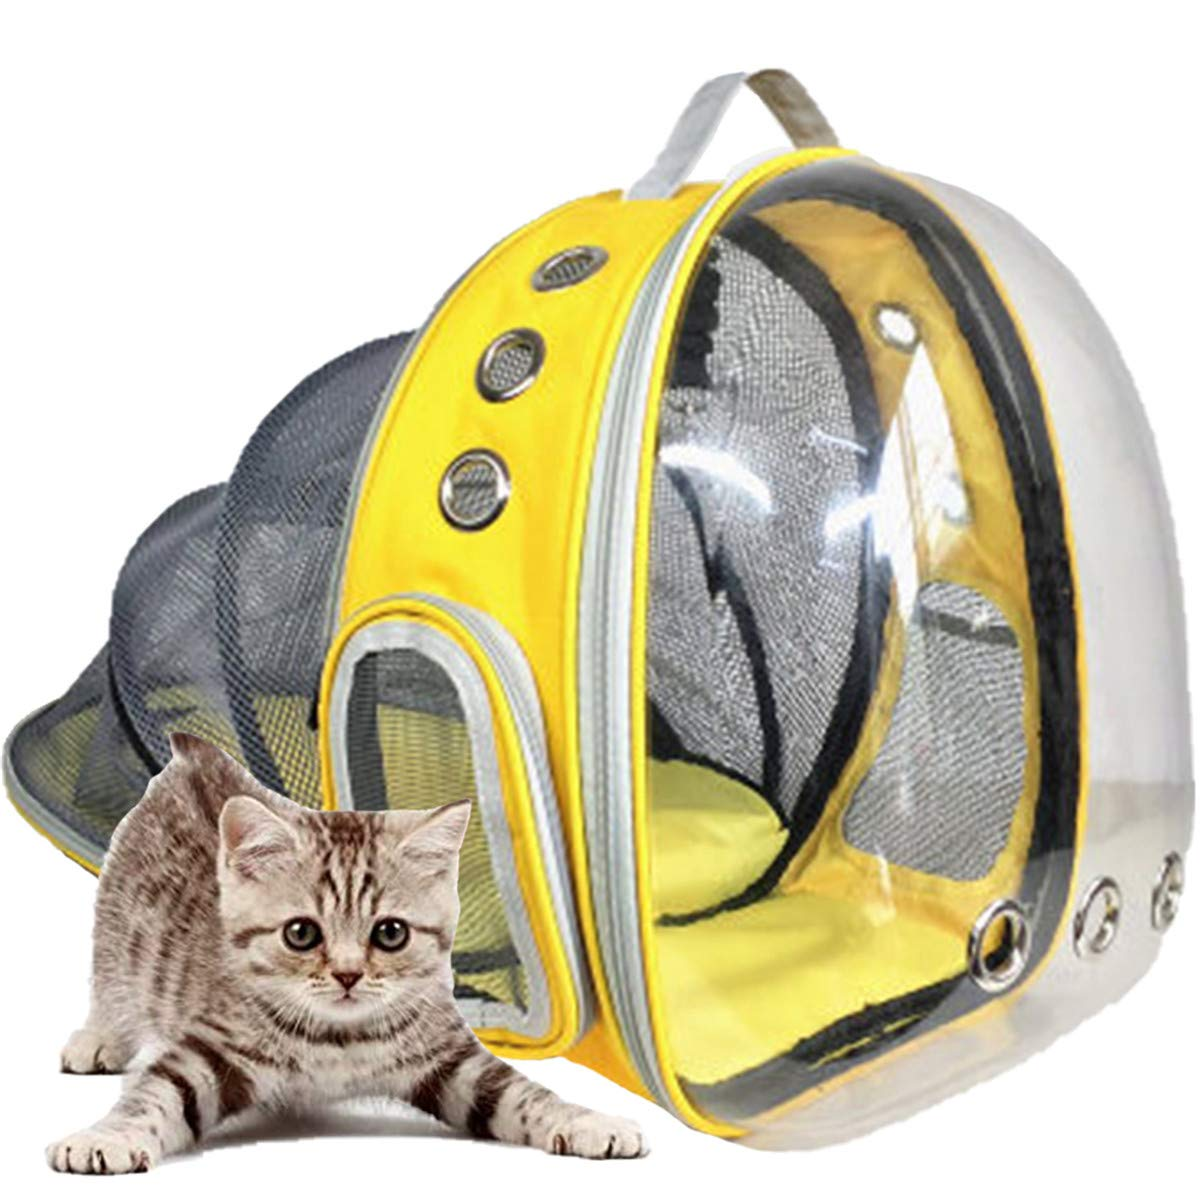 Shiningirl Expandable Breathable Mesh Front and Back Pet Cat Small Dog Carrier Backpack Space Capsule Carrying Travel Cage for Hiking Walking Outdoor Use